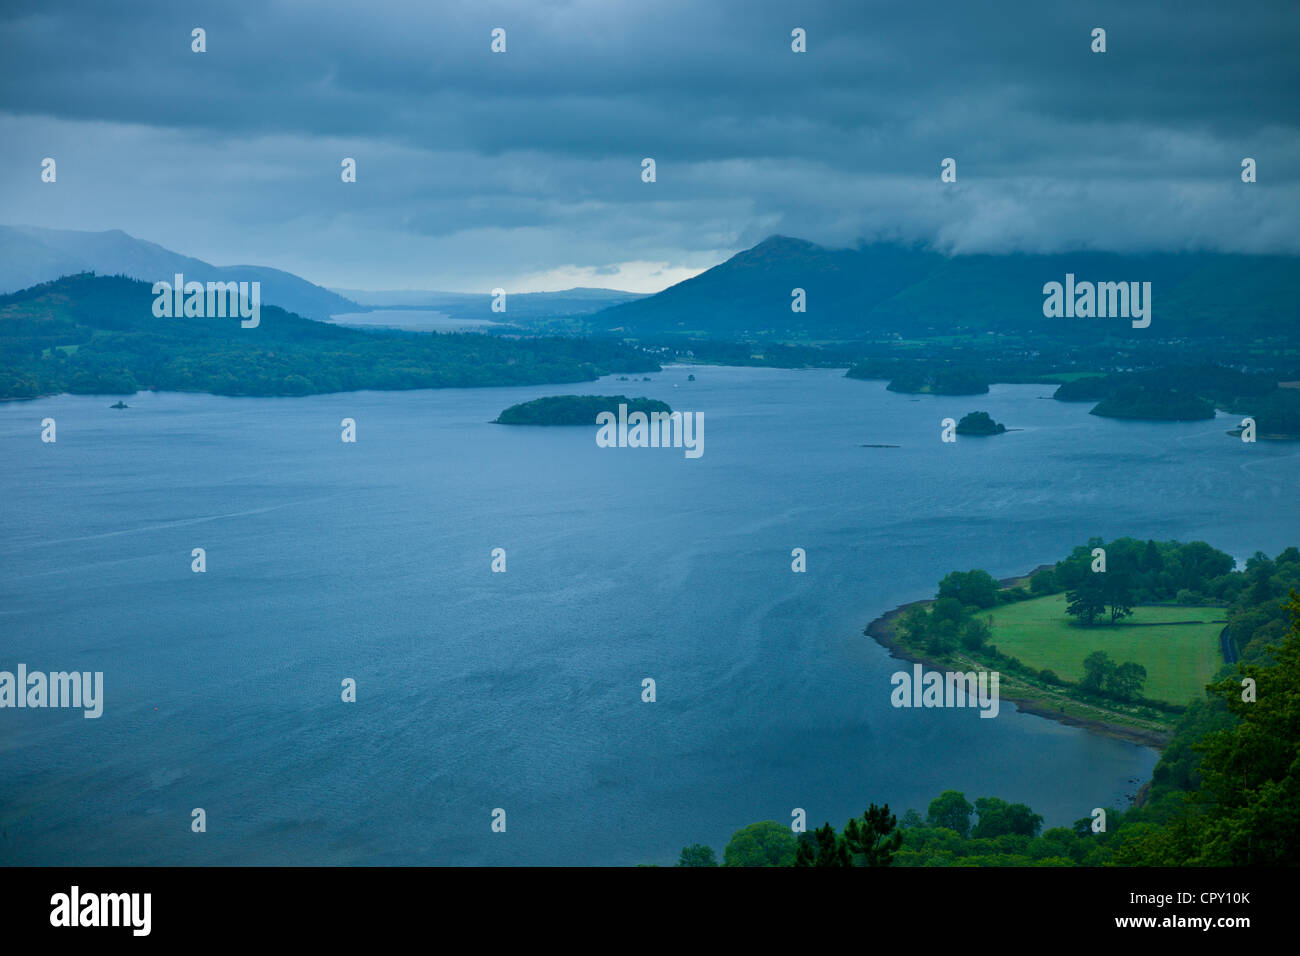 Derwent Water lake from the southside in the Lake District National Park, Cumbria, UK - Stock Image